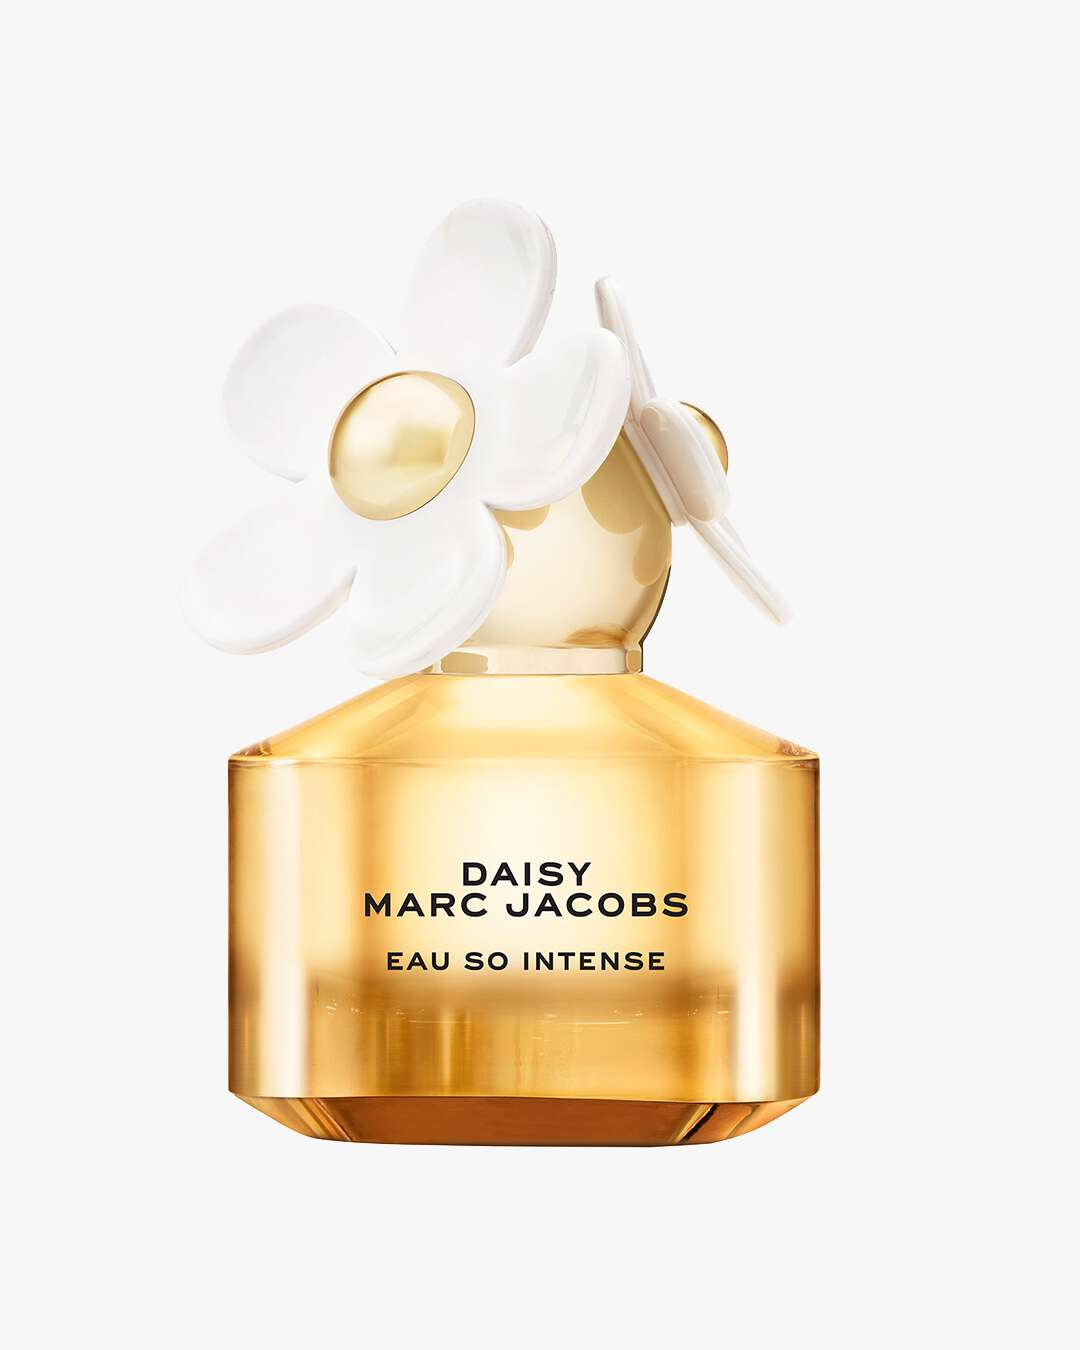 Produktbilde for Daisy Eau So Intense EdP 30ml hos Fredrik & Louisa